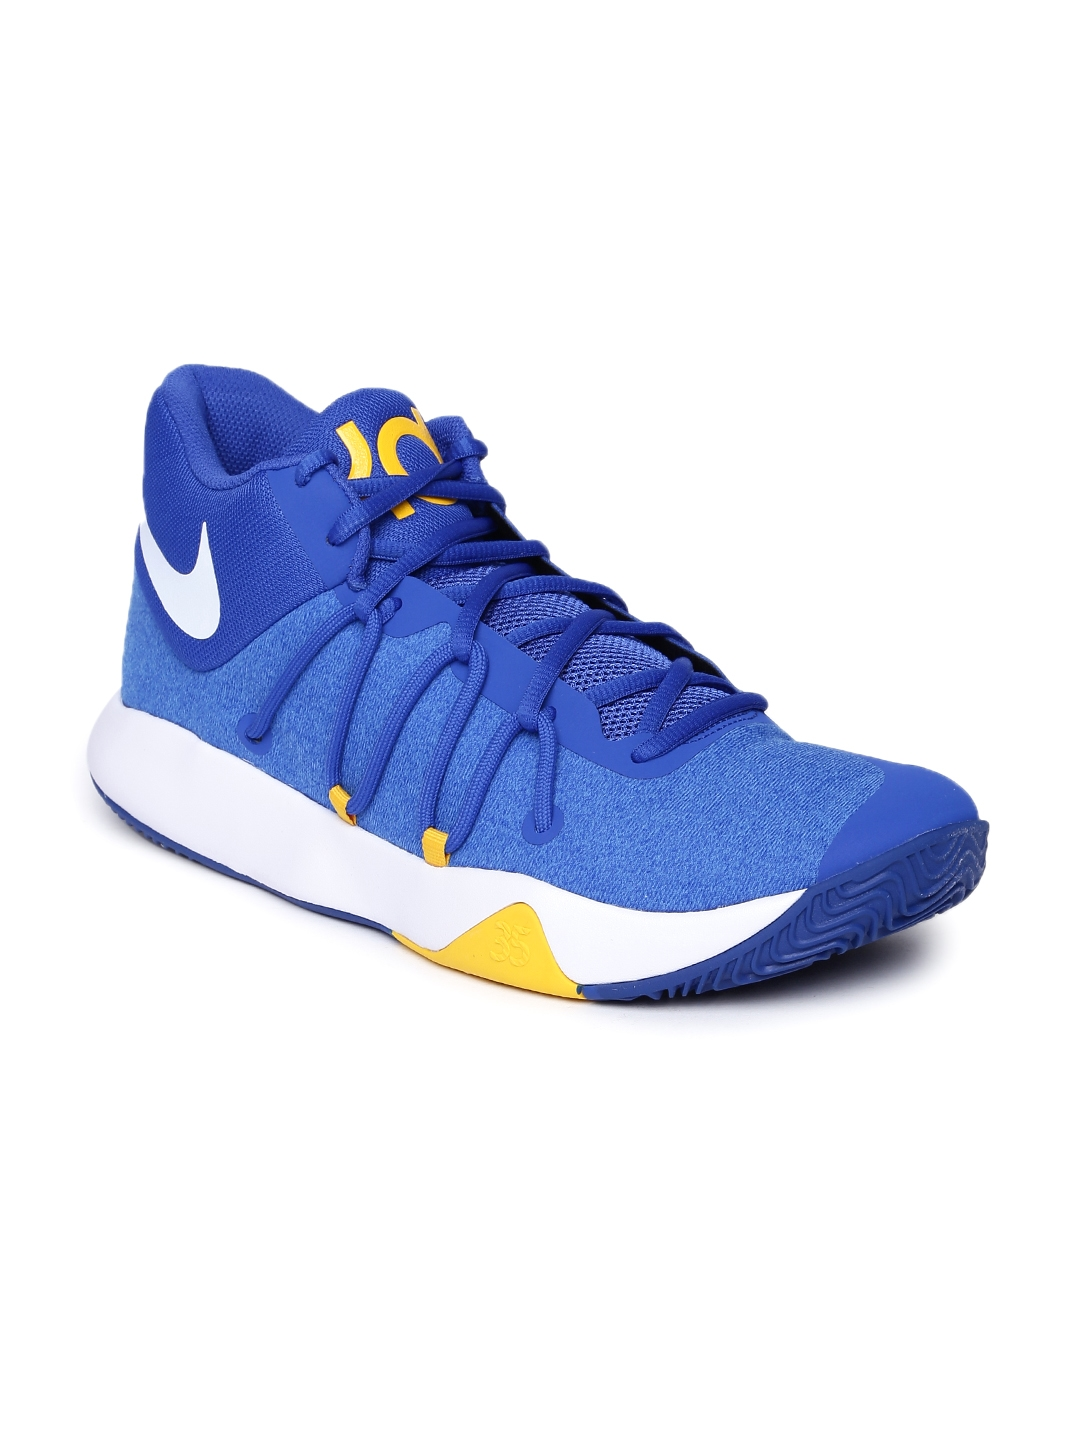 dafc0481a87 Nike Men Blue Textile Mid-Top NBA KEVIN DURANT TREY 5 V Basketball Shoes